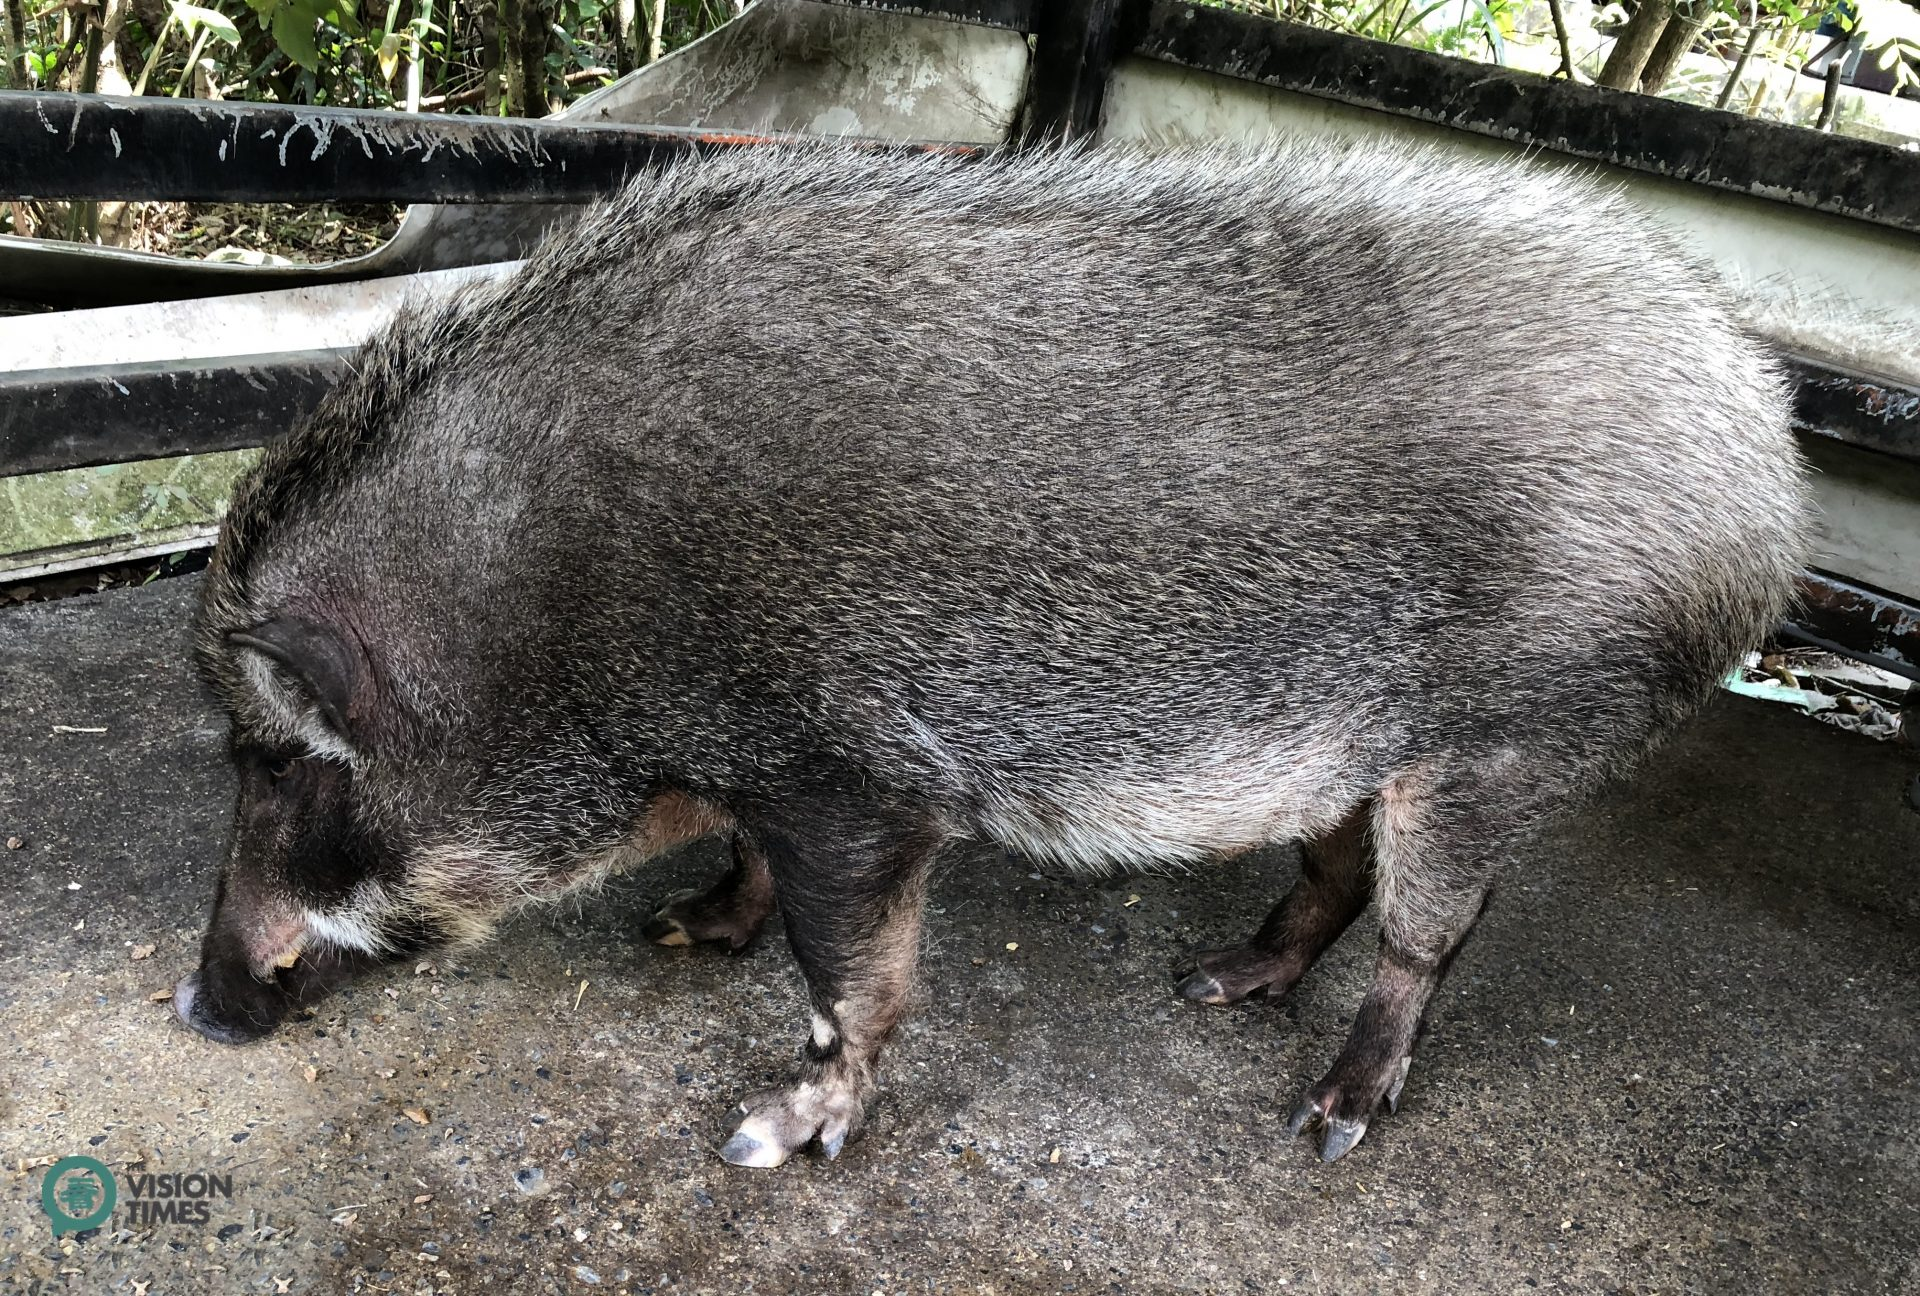 A Formosan wild boar called Maoguai (毛怪) is also a star of the organic farm. (Image: Billy Shyu / Vision Times)